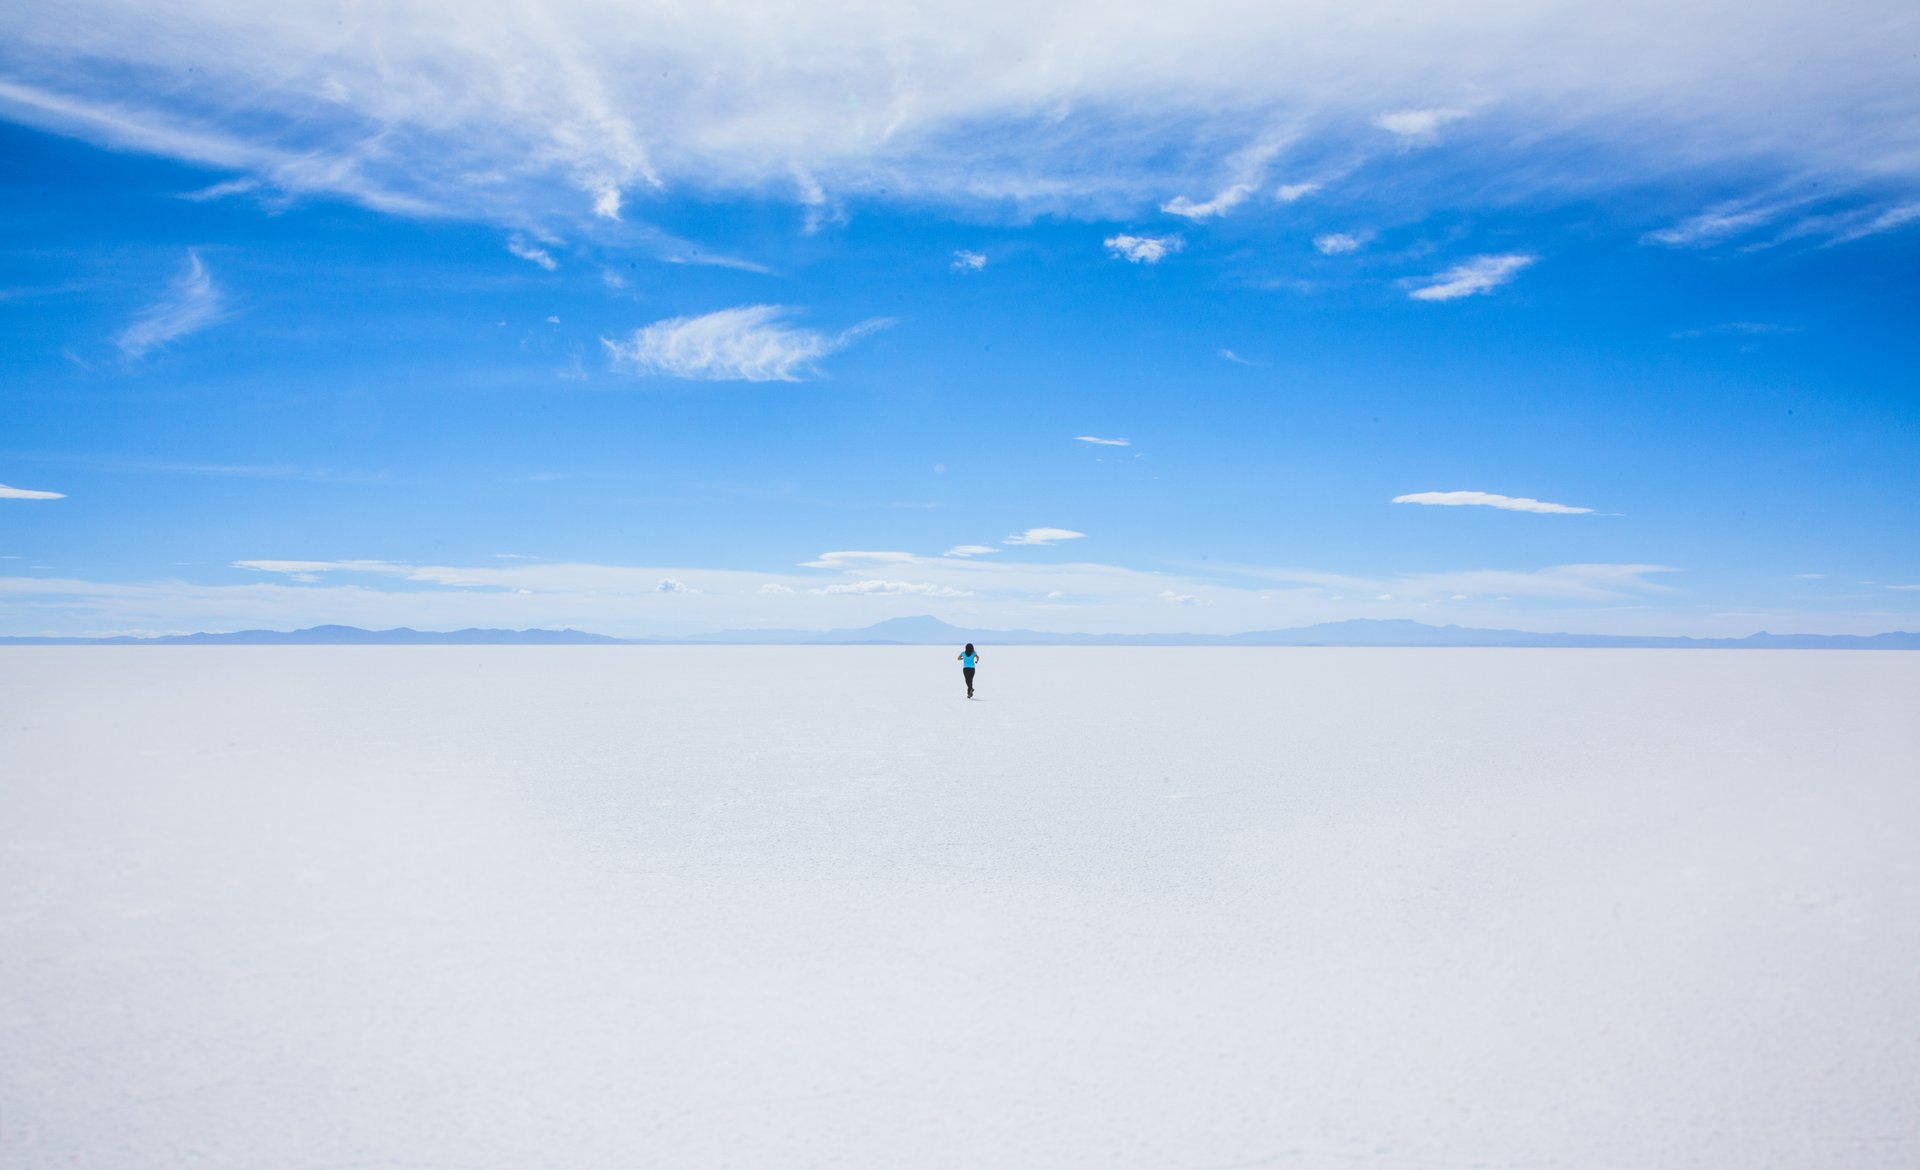 Walk the Salar de Uyuni Salt Flats in Bolivia 2019 - Best Time